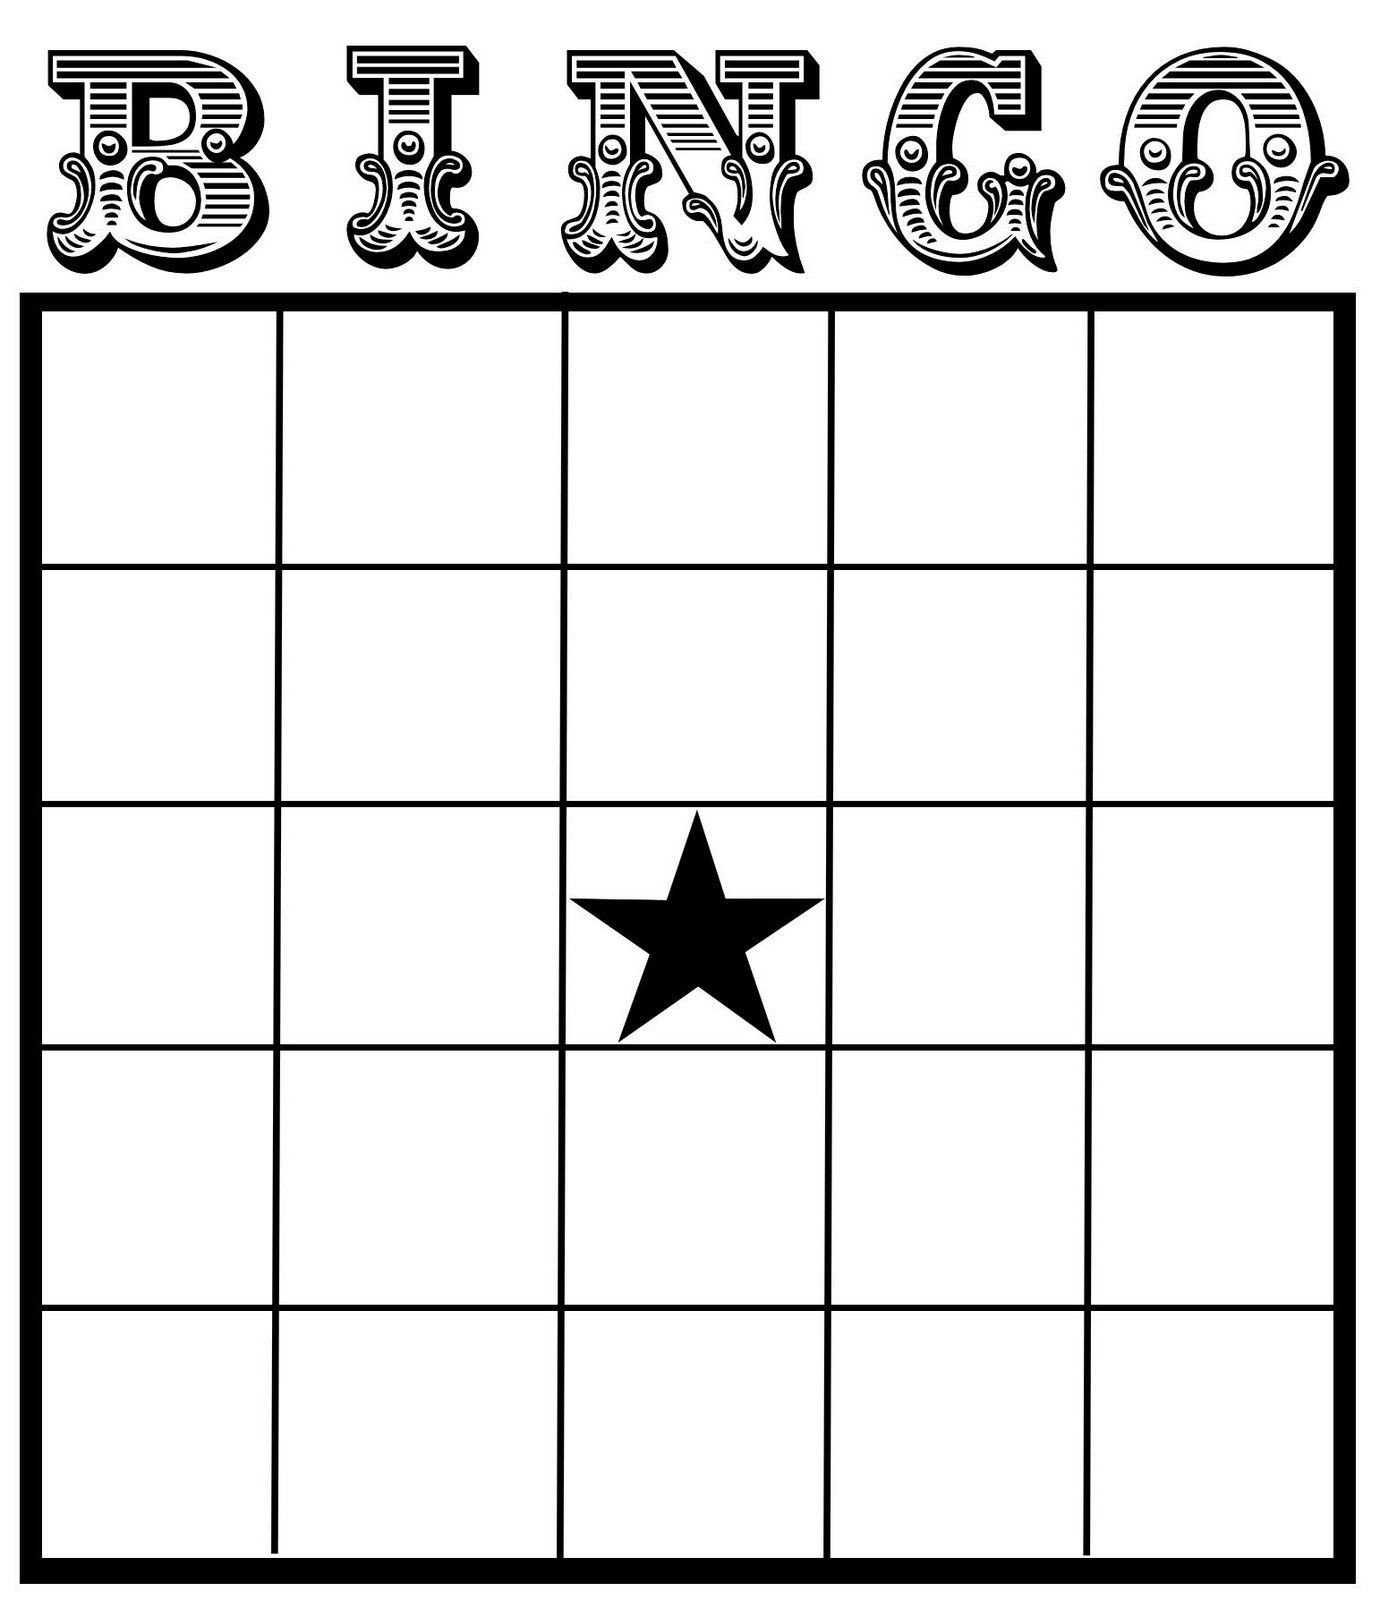 Blank Bingo Card Template Christine Zani Bingo Card Printables to